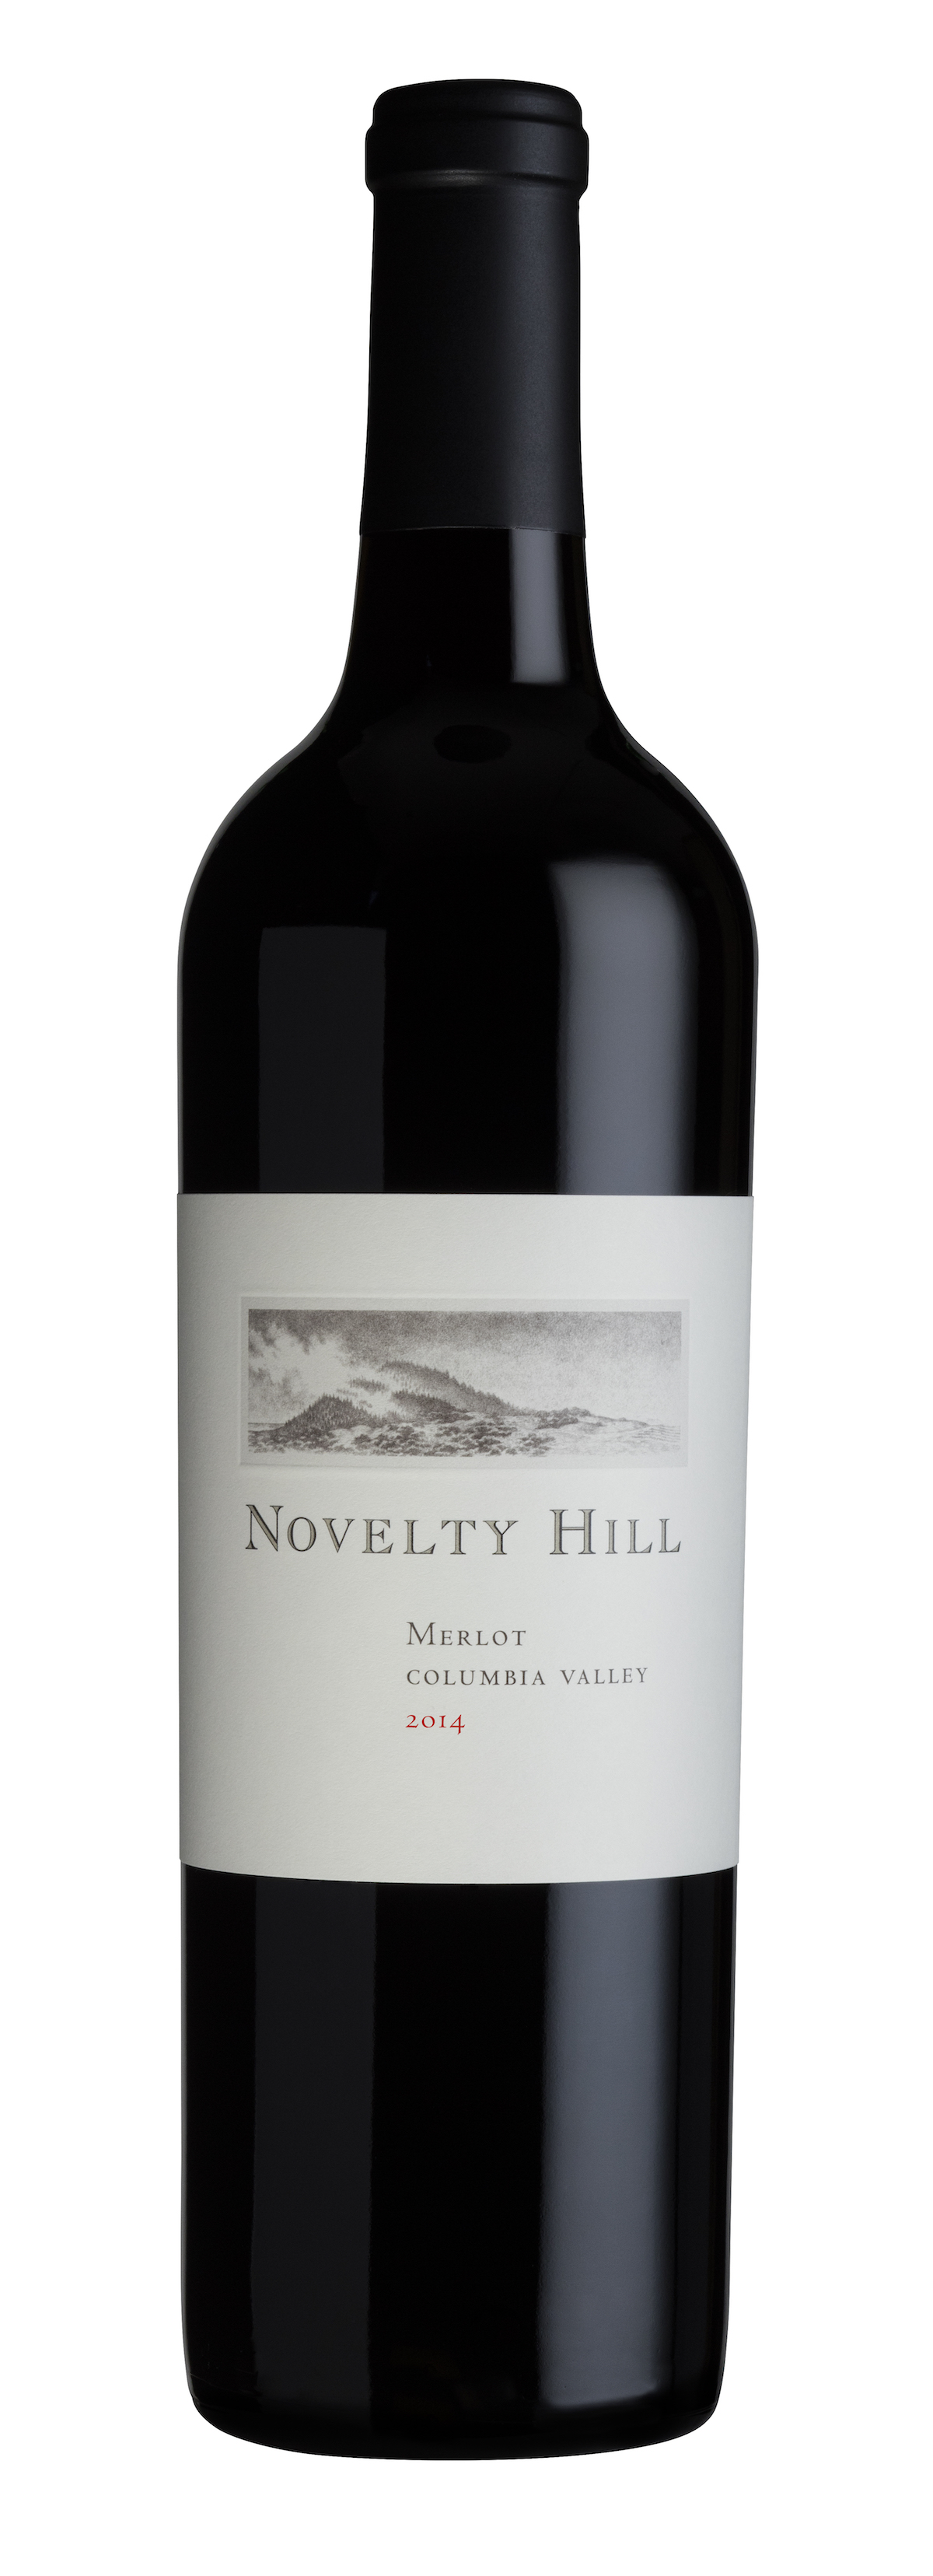 Novelty Hill 2014 Columbia Valley Merlot